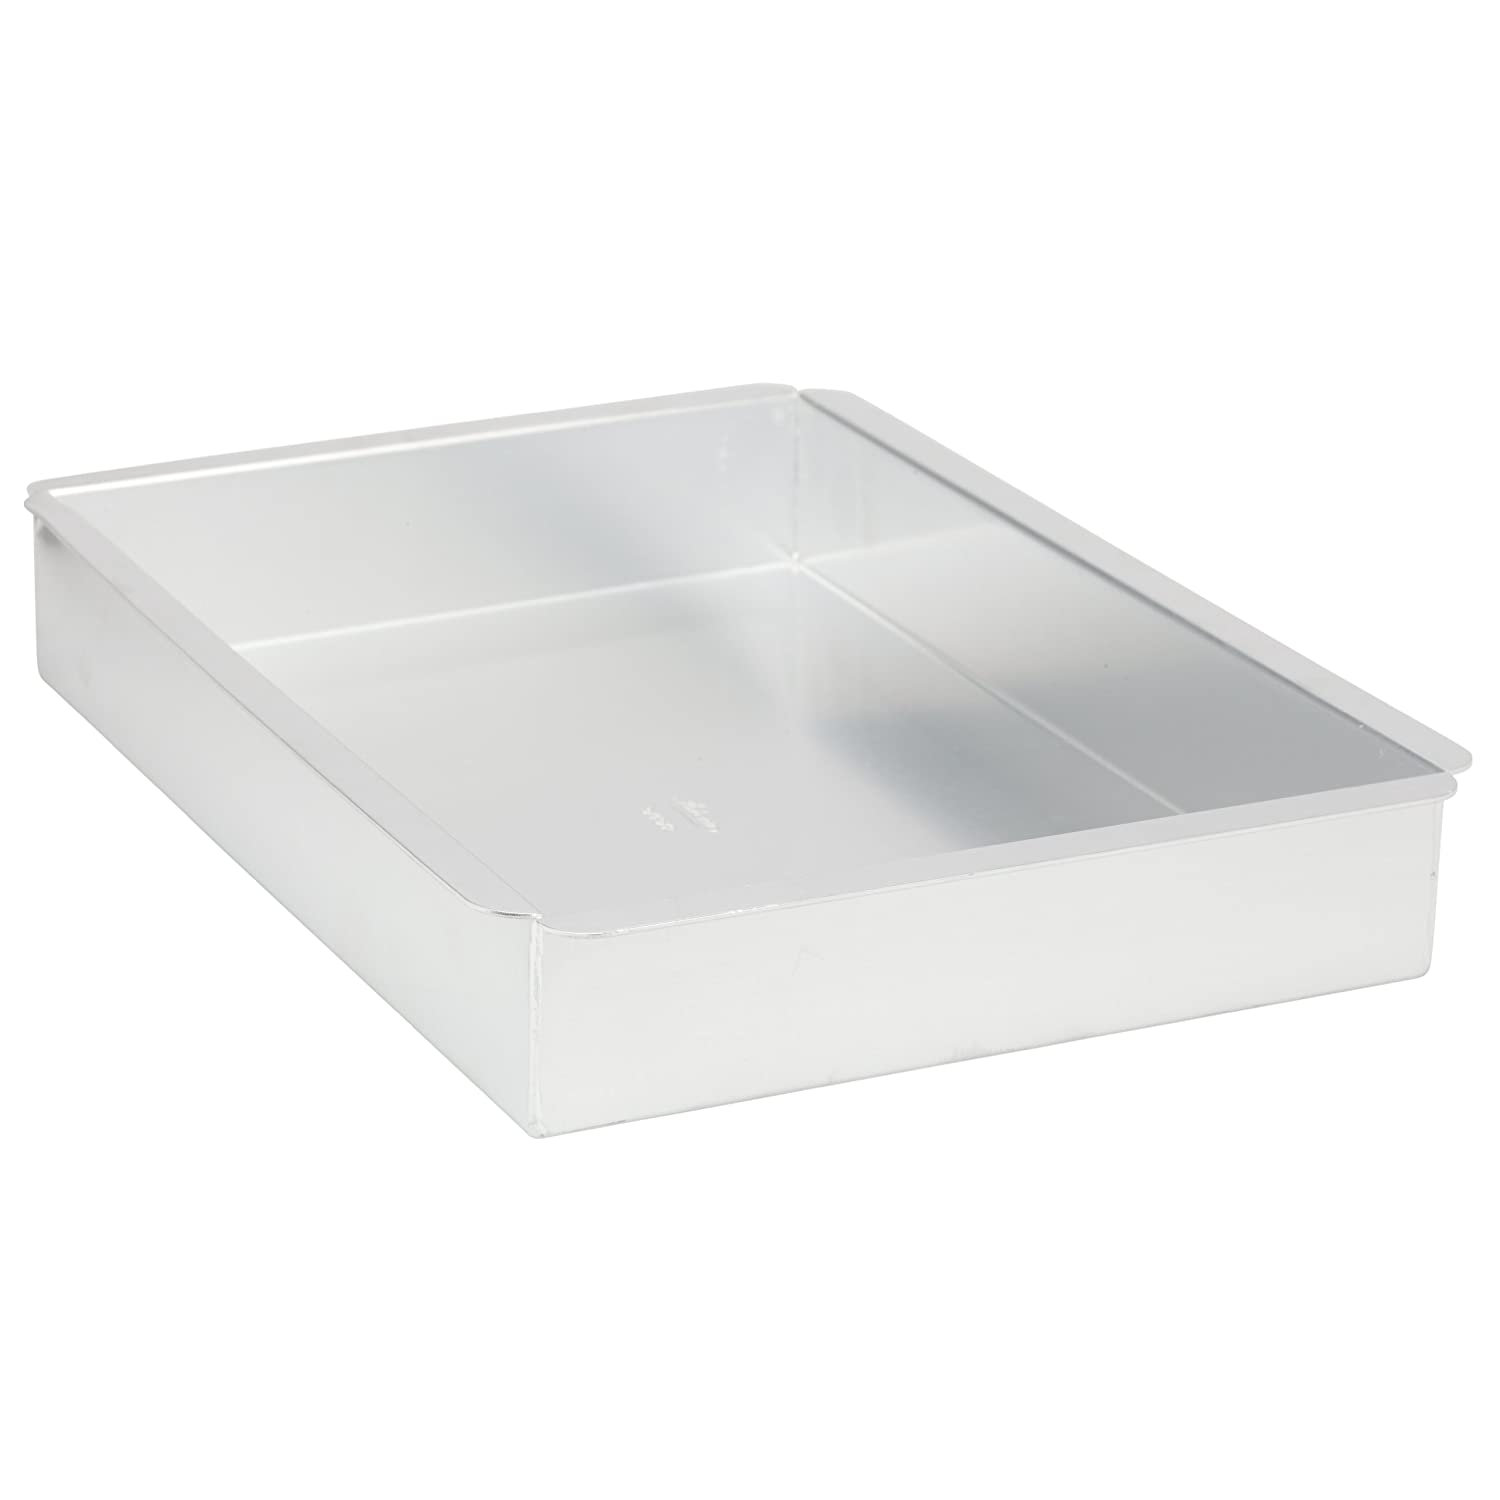 Ateco Aluminum Cake Pan, Rectangle, 8- by 12- by 3-Inches 12812